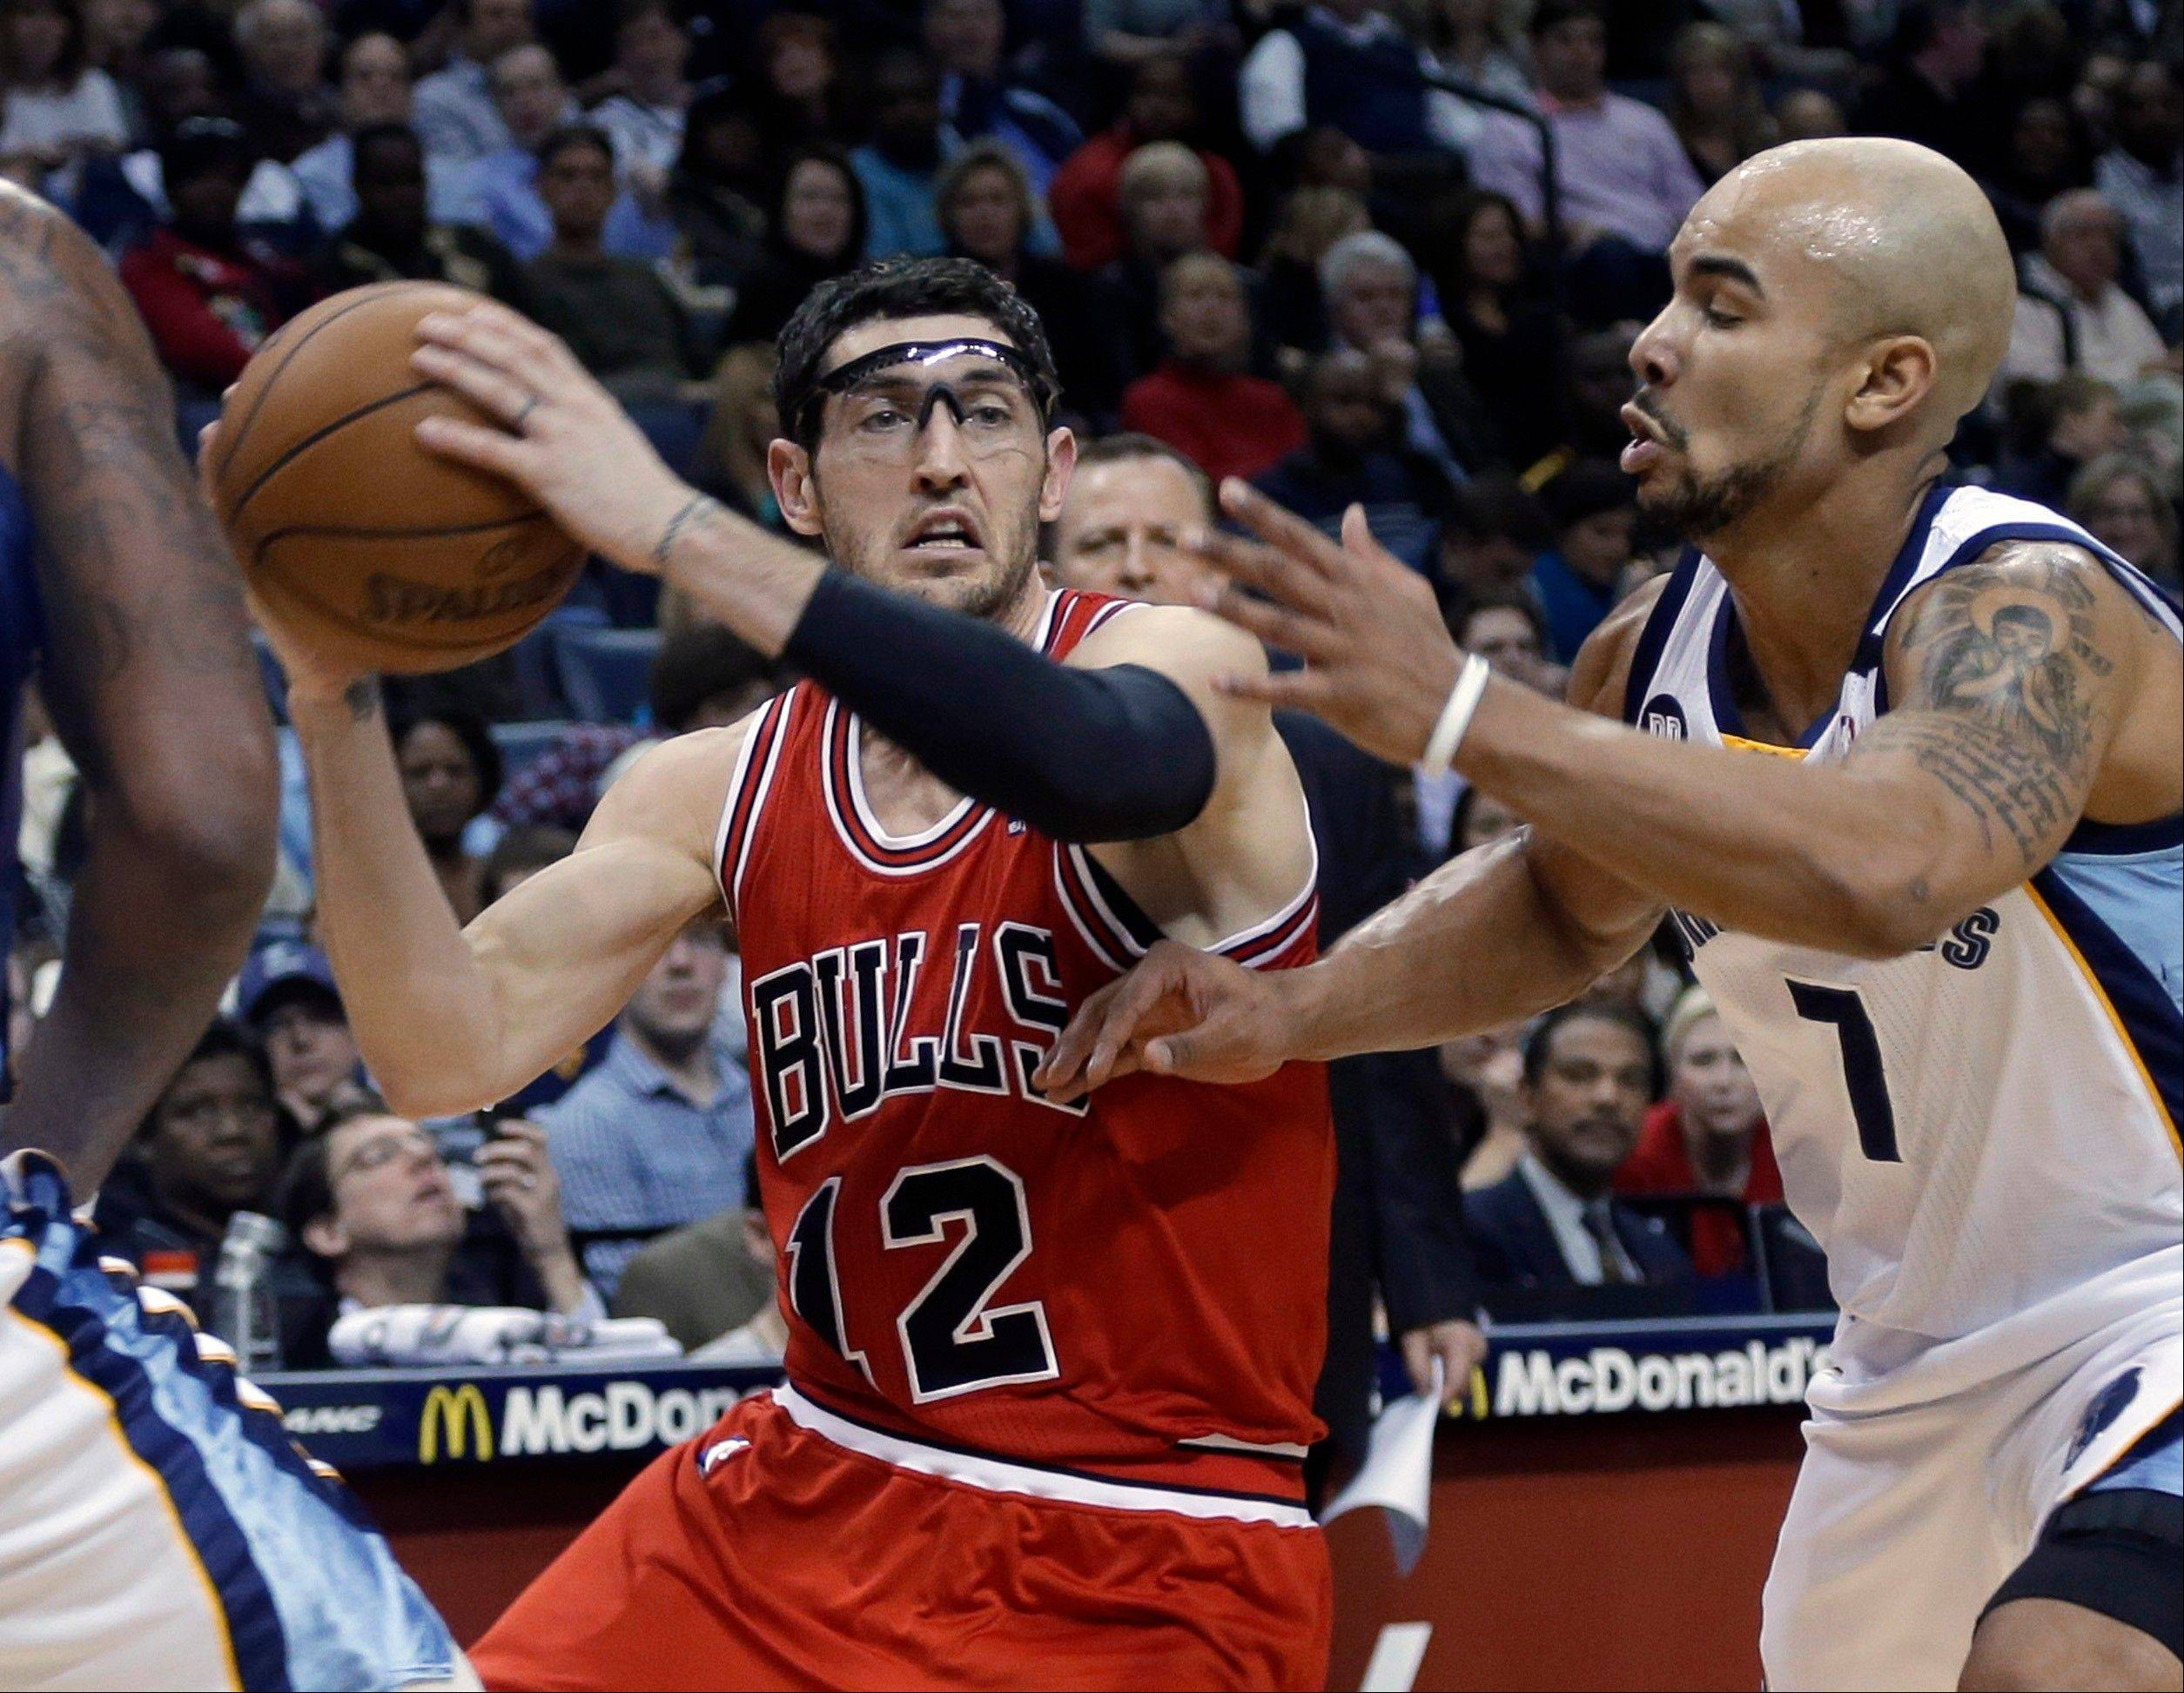 Bulls guard Kirk Hinrich is pressured by the Grizzlies� Jerryd Bayless.